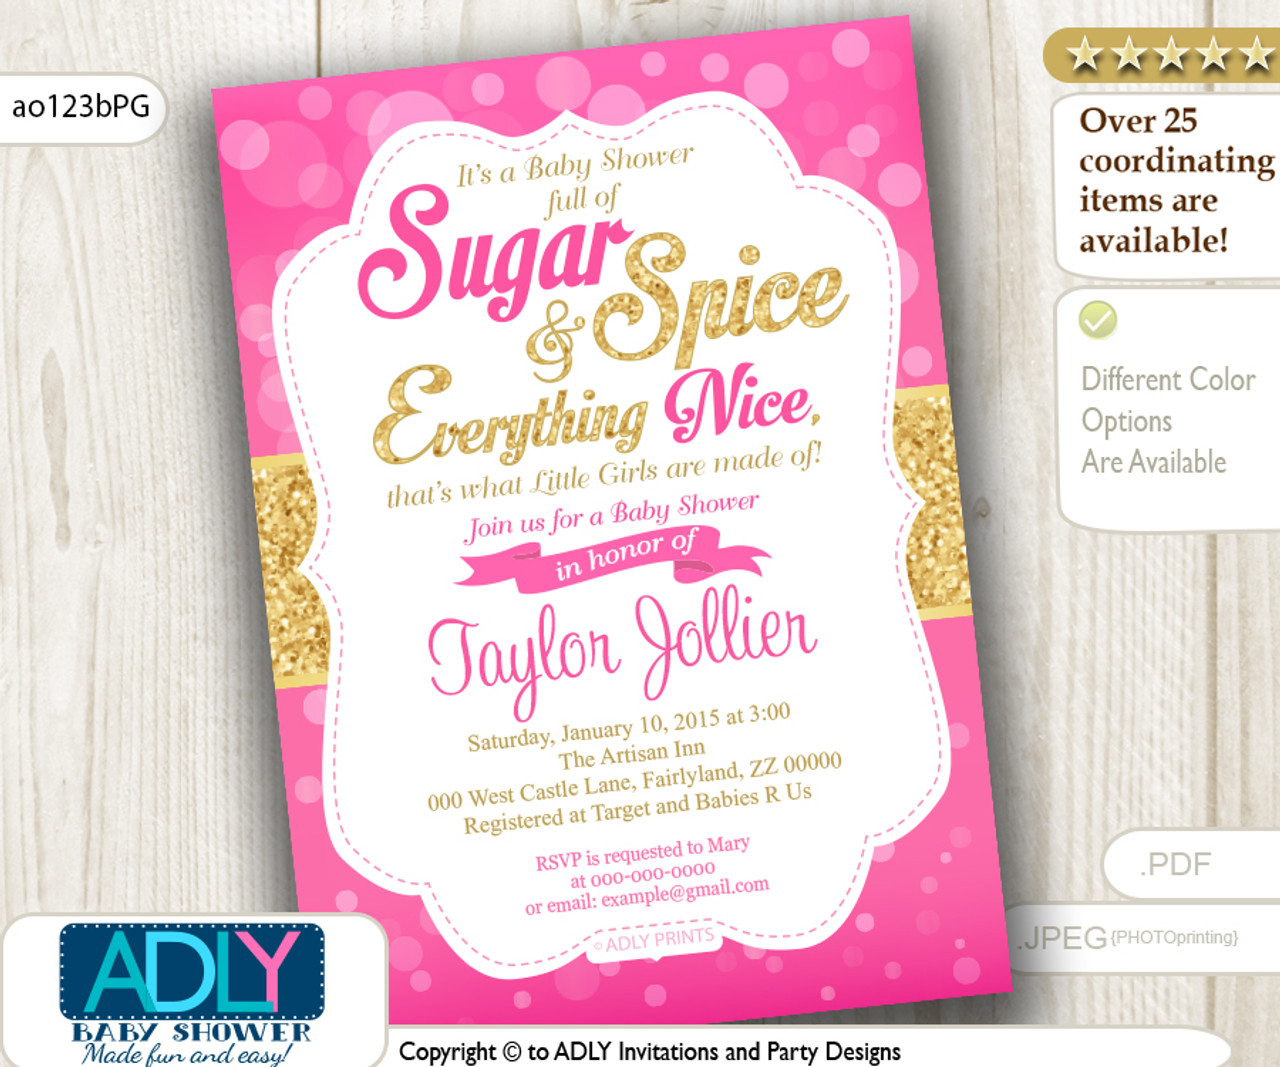 Hot Pink Fuschia And Gold Sugar And Spice And Everything Nice That Little Girls Are Made Of Invitation Adly Invitations And Digital Party Designs